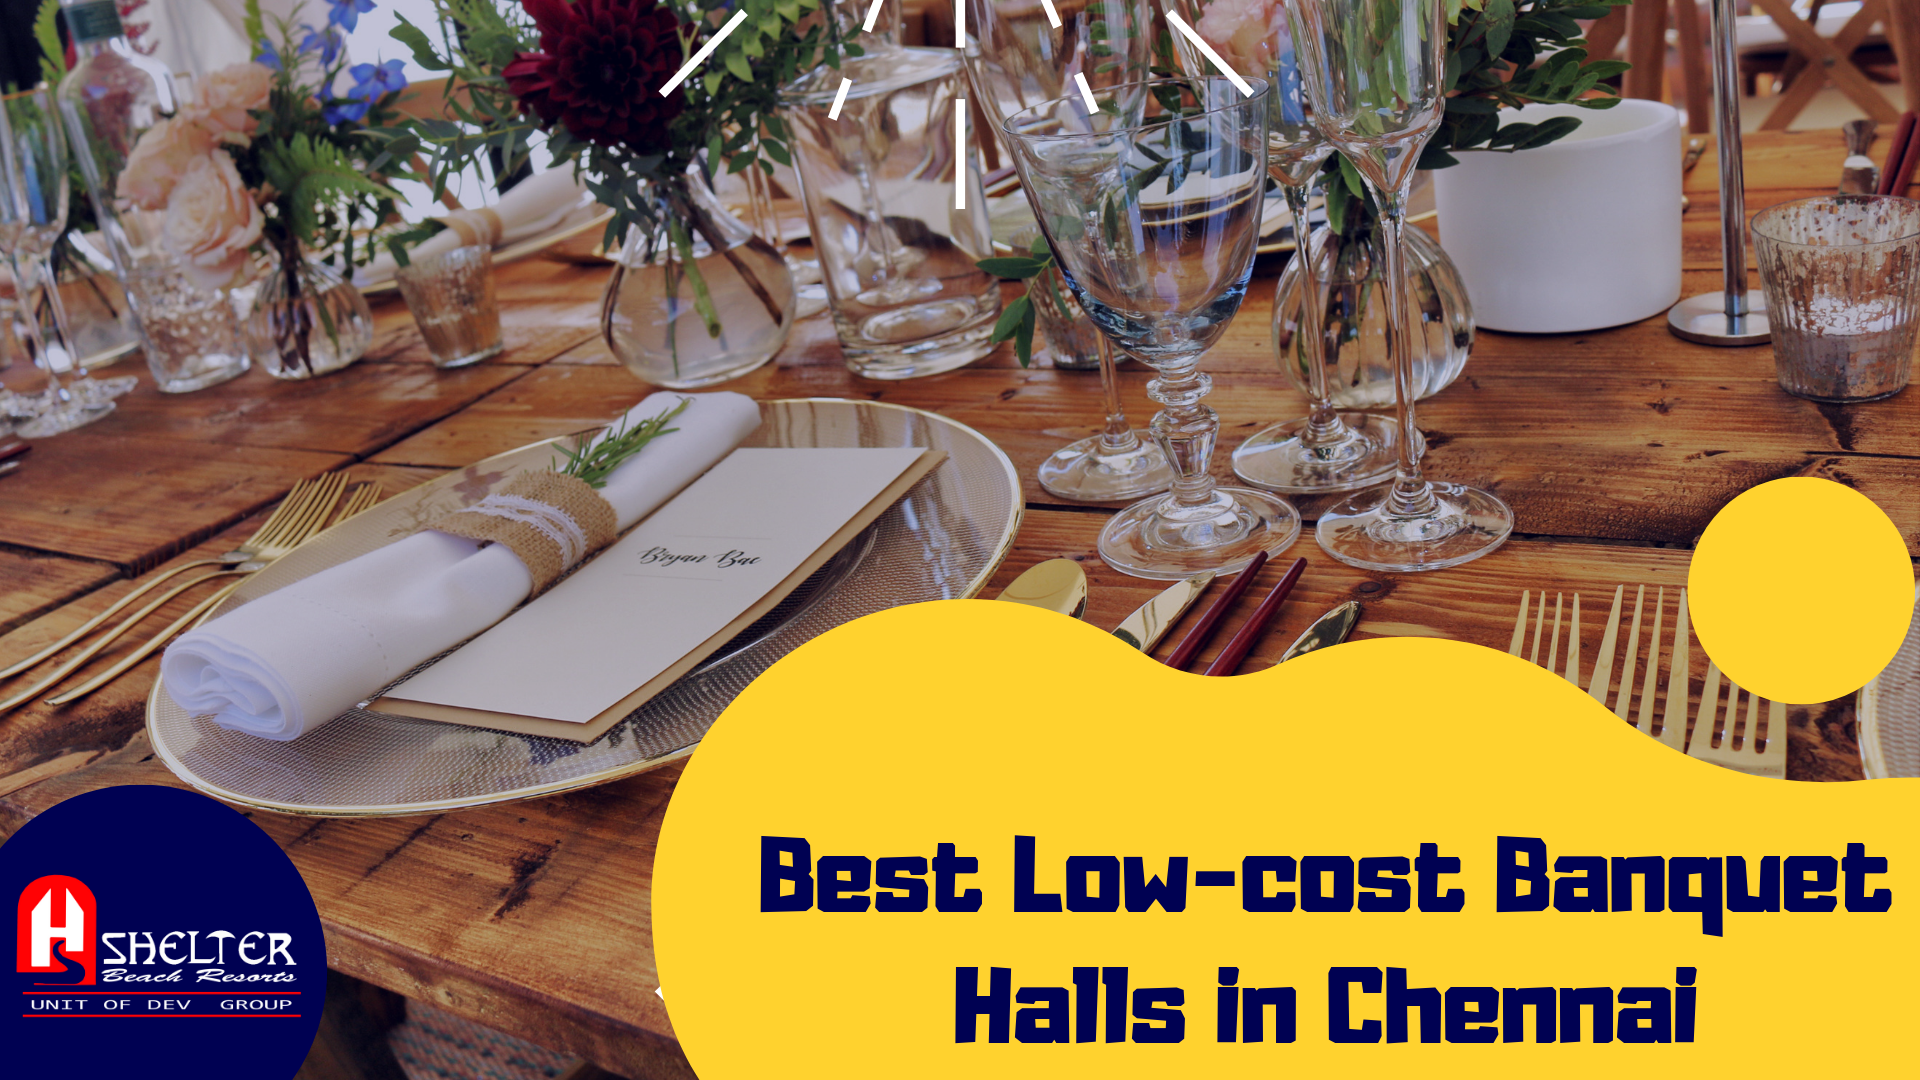 Best Low-cost Banquet Halls in Chennai